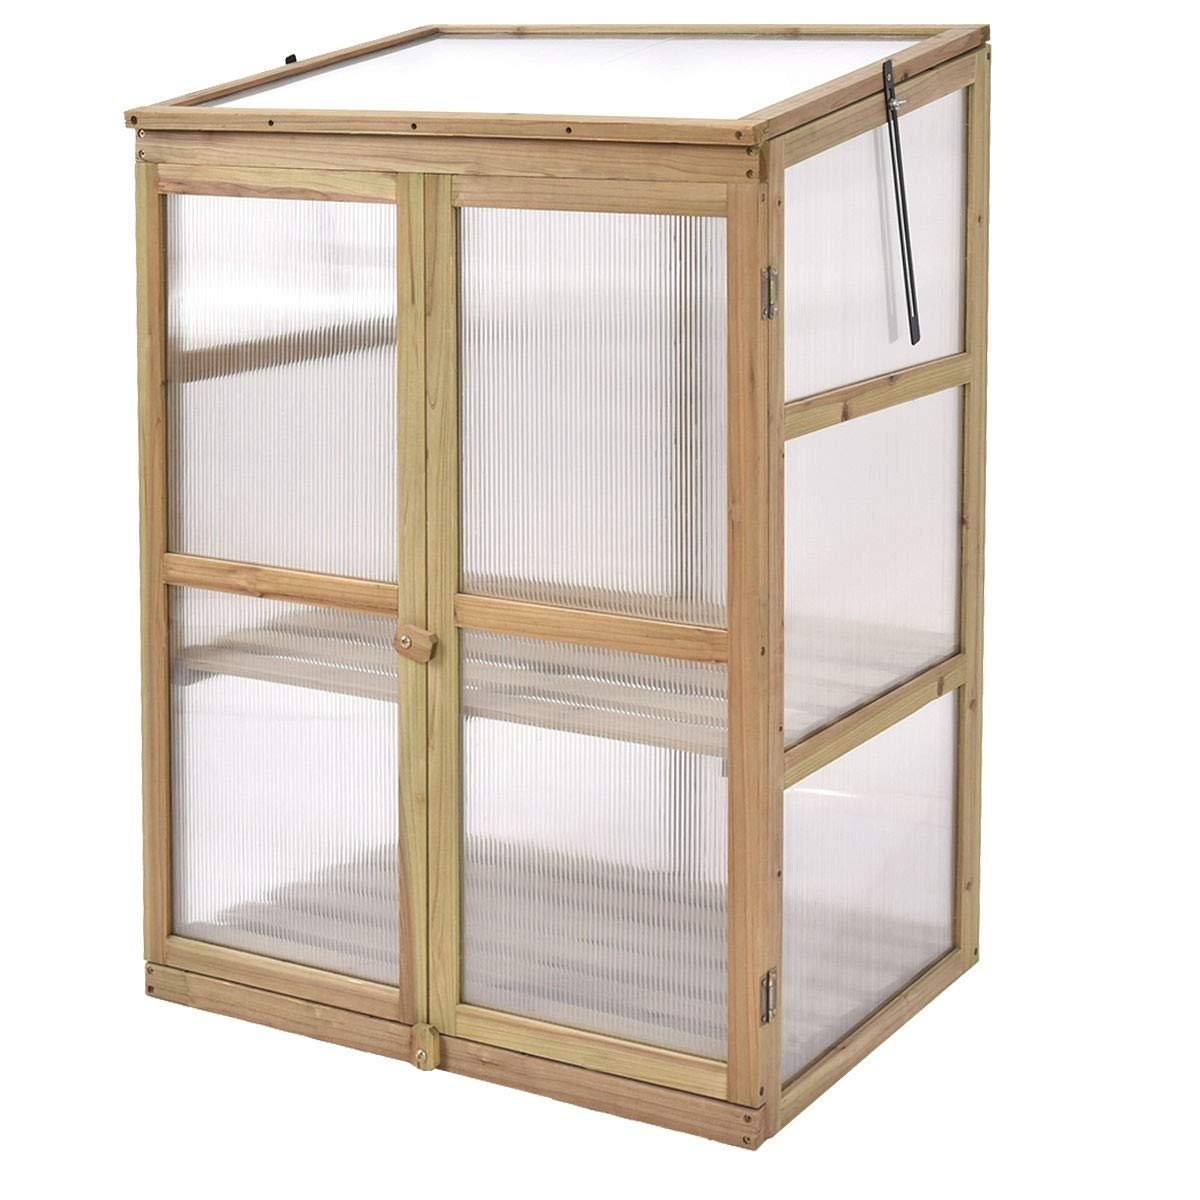 Garden Portable Wooden Raised Plants Shelves Protection Small Cold Frame Greenhouse